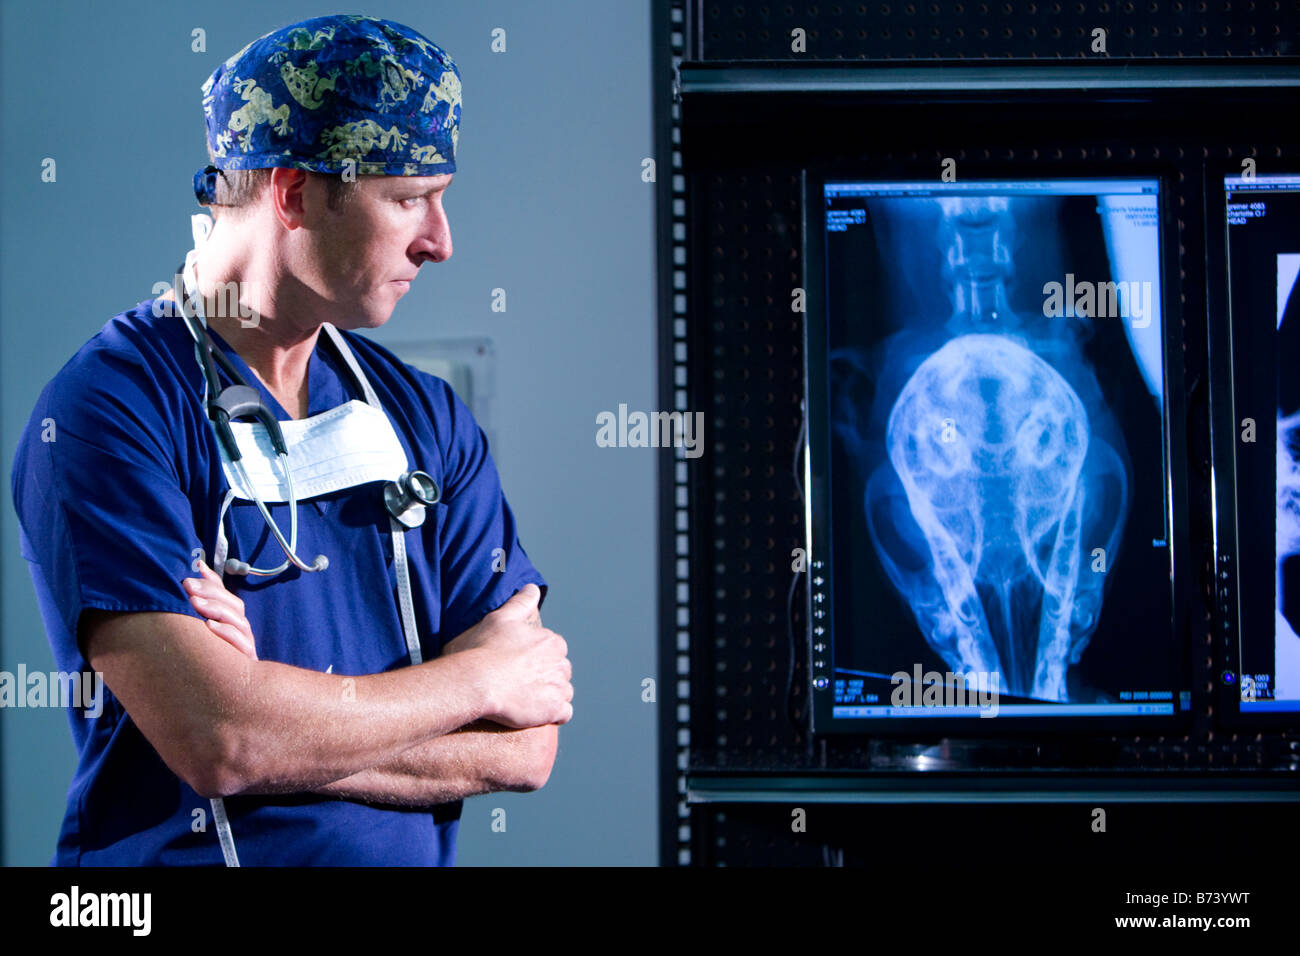 Veterinarian looking at animal x-rays - Stock Image